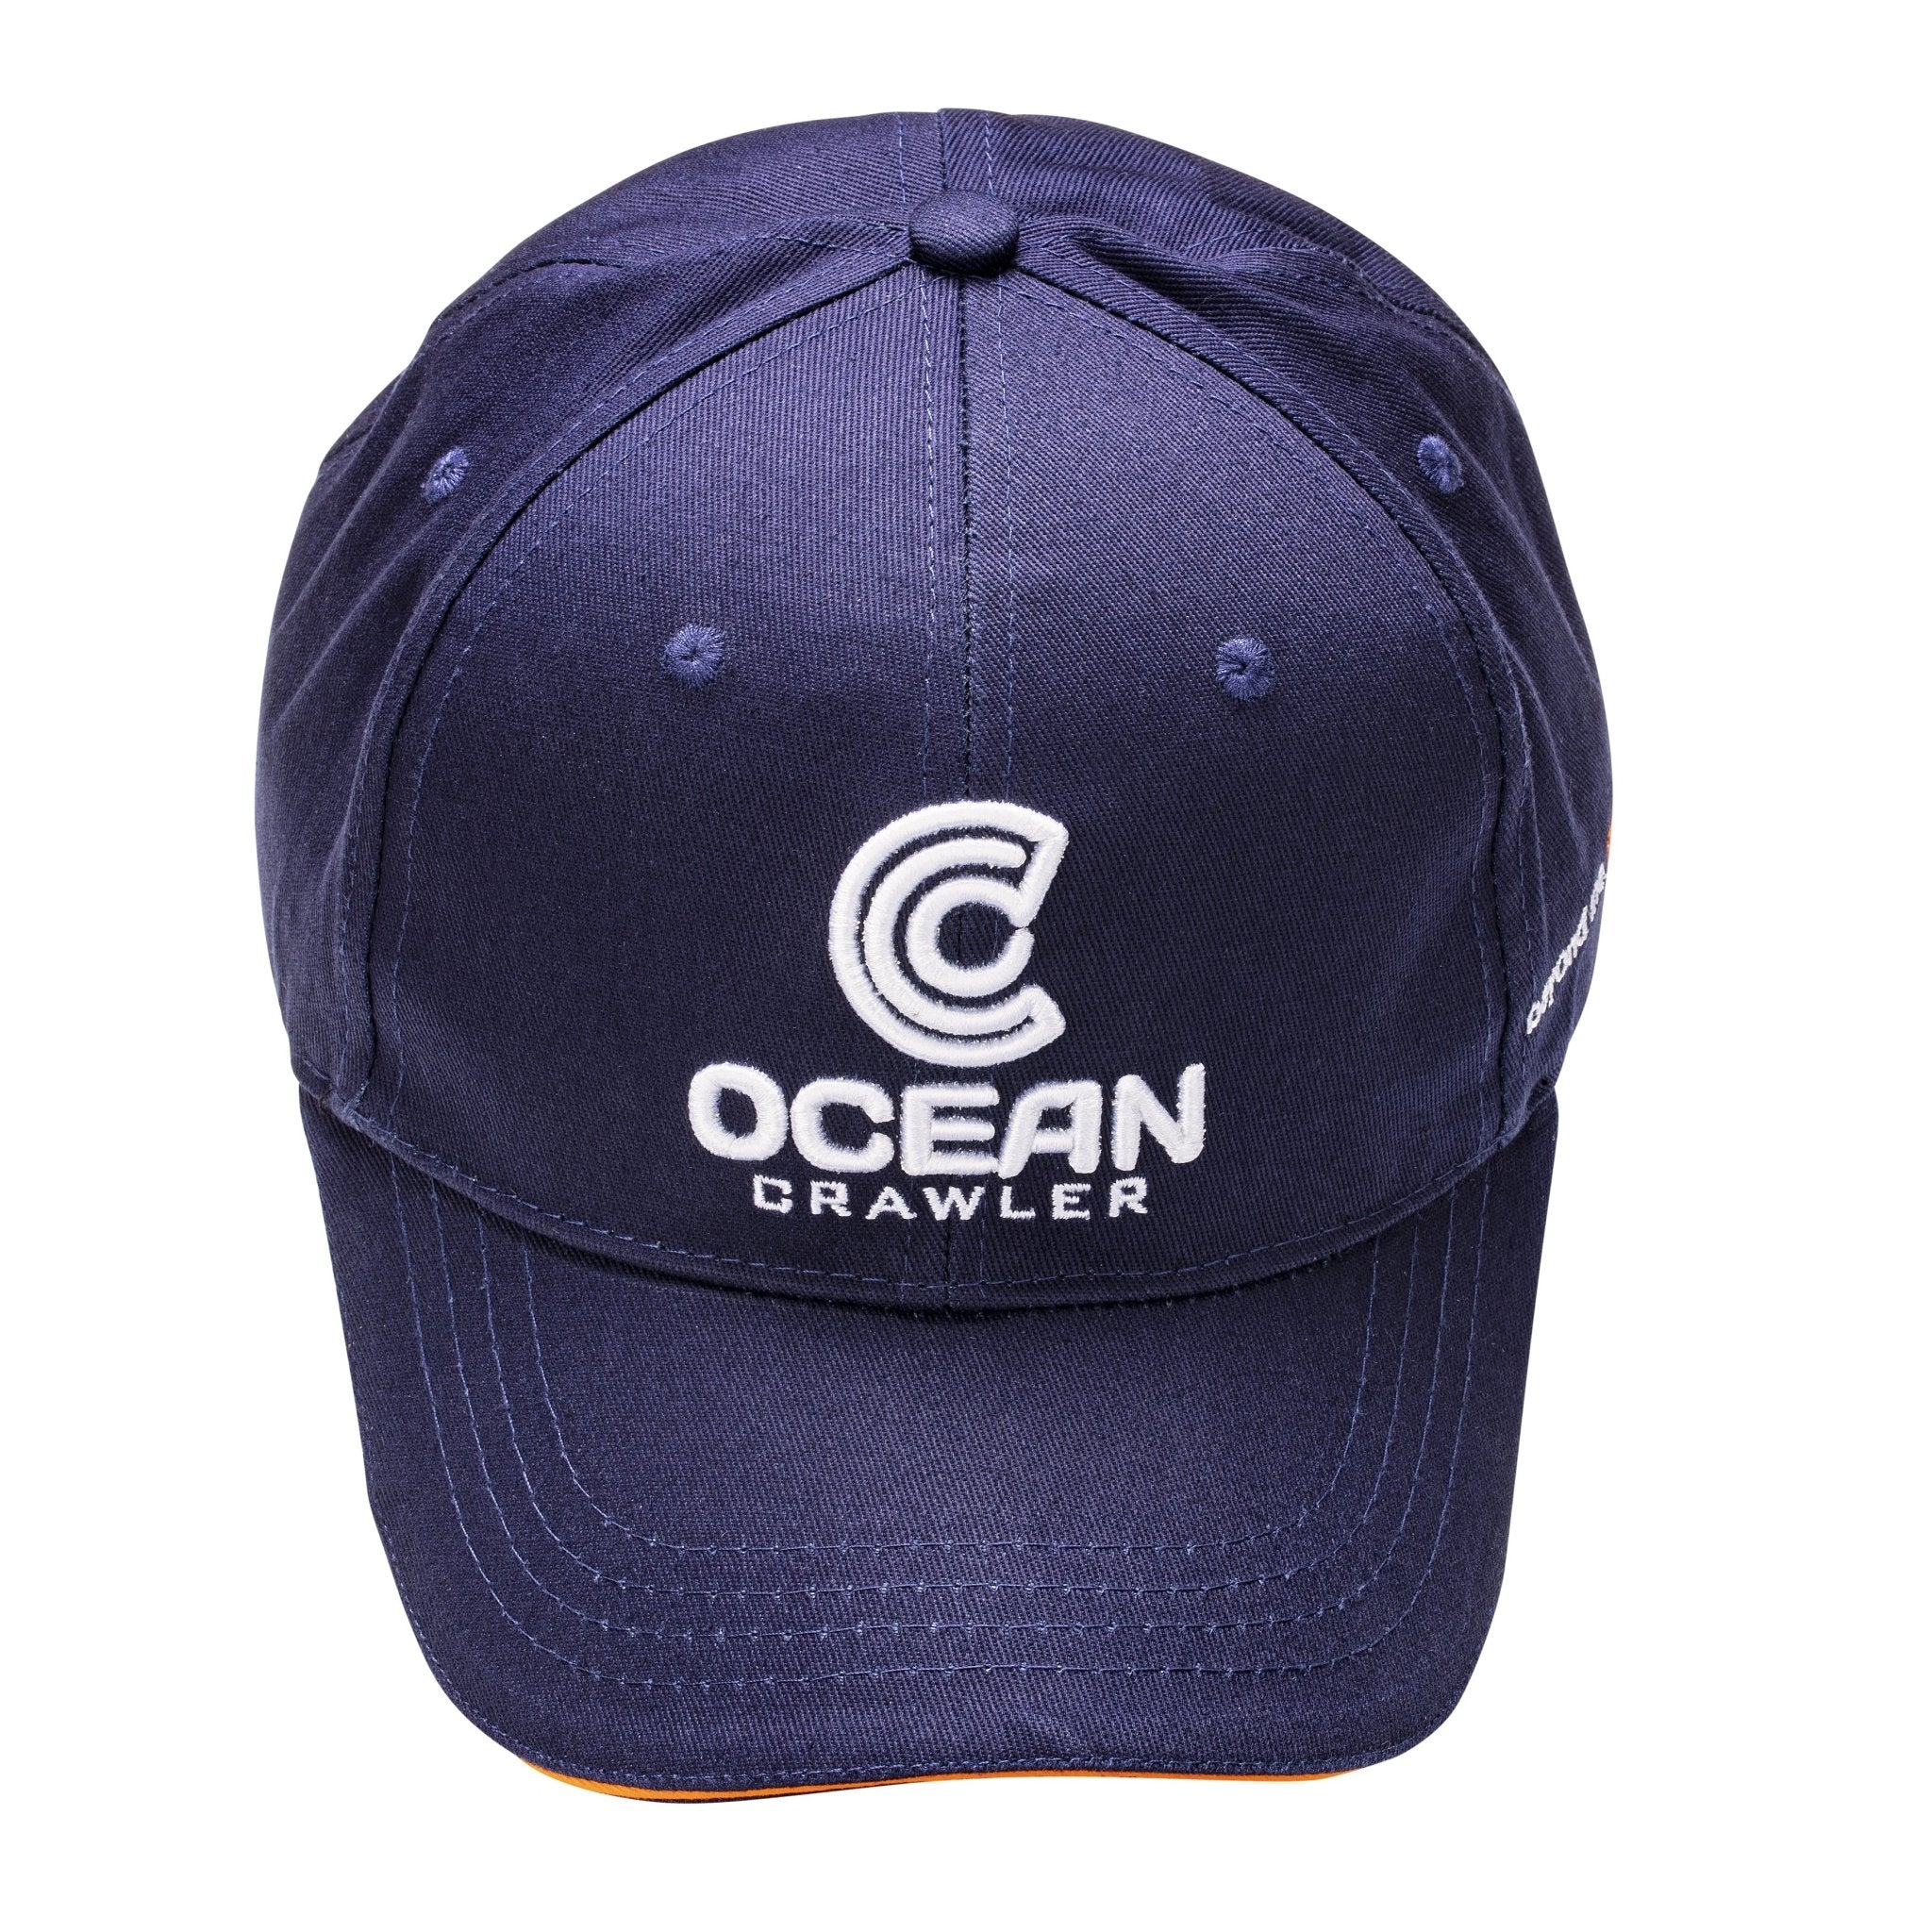 Ocean Crawler Hat Cap - Blue - Ocean Crawler Watch Co.